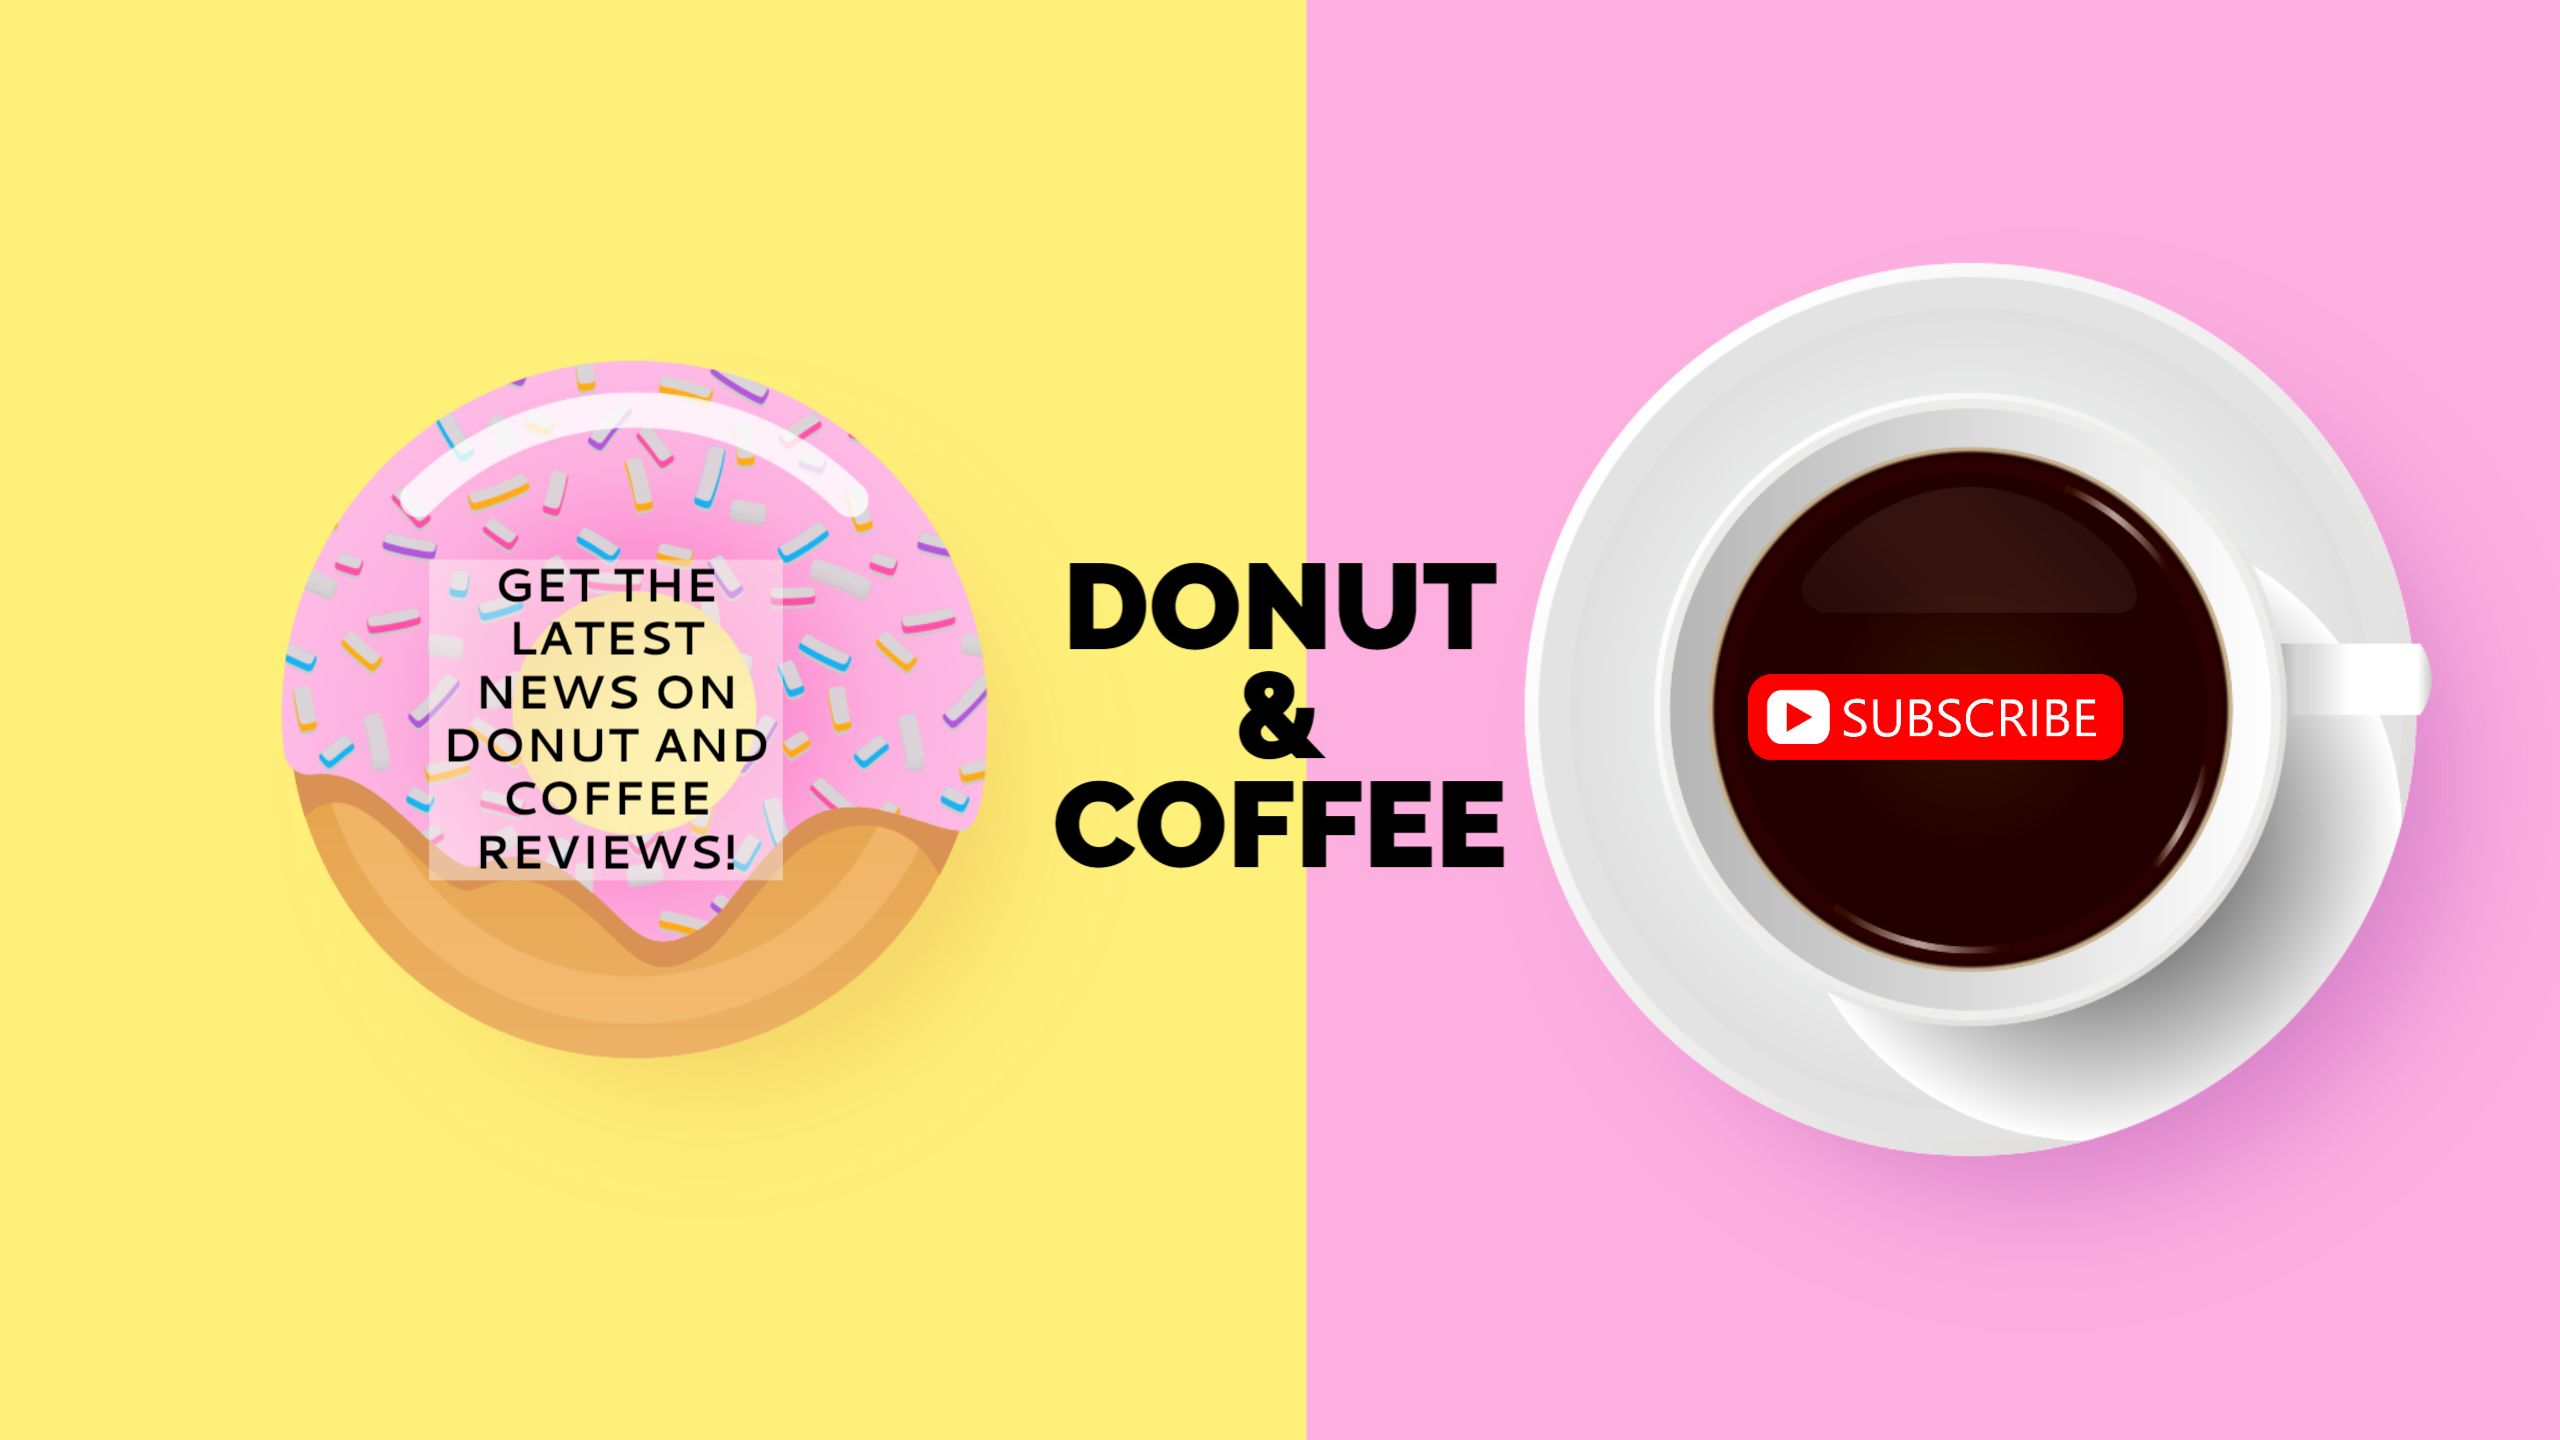 Food Review Youtube Channel Art